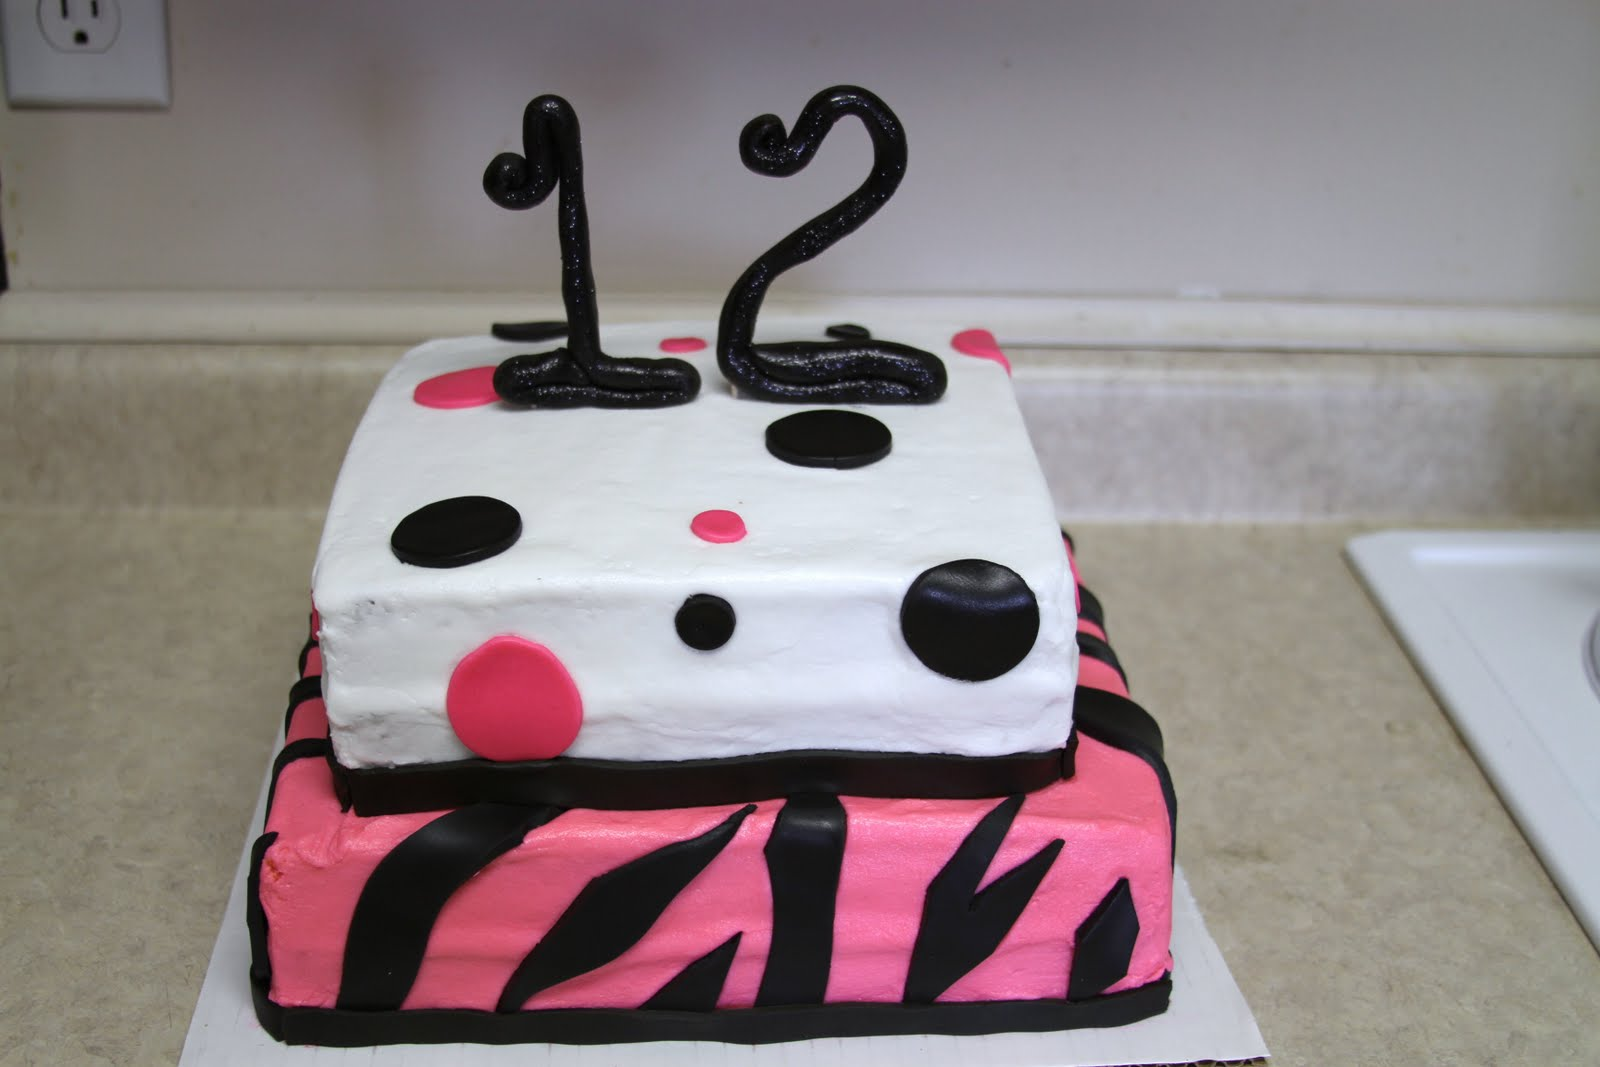 Michele Robinson Cakes Zebra Poka Dot 12th Birthday Cake